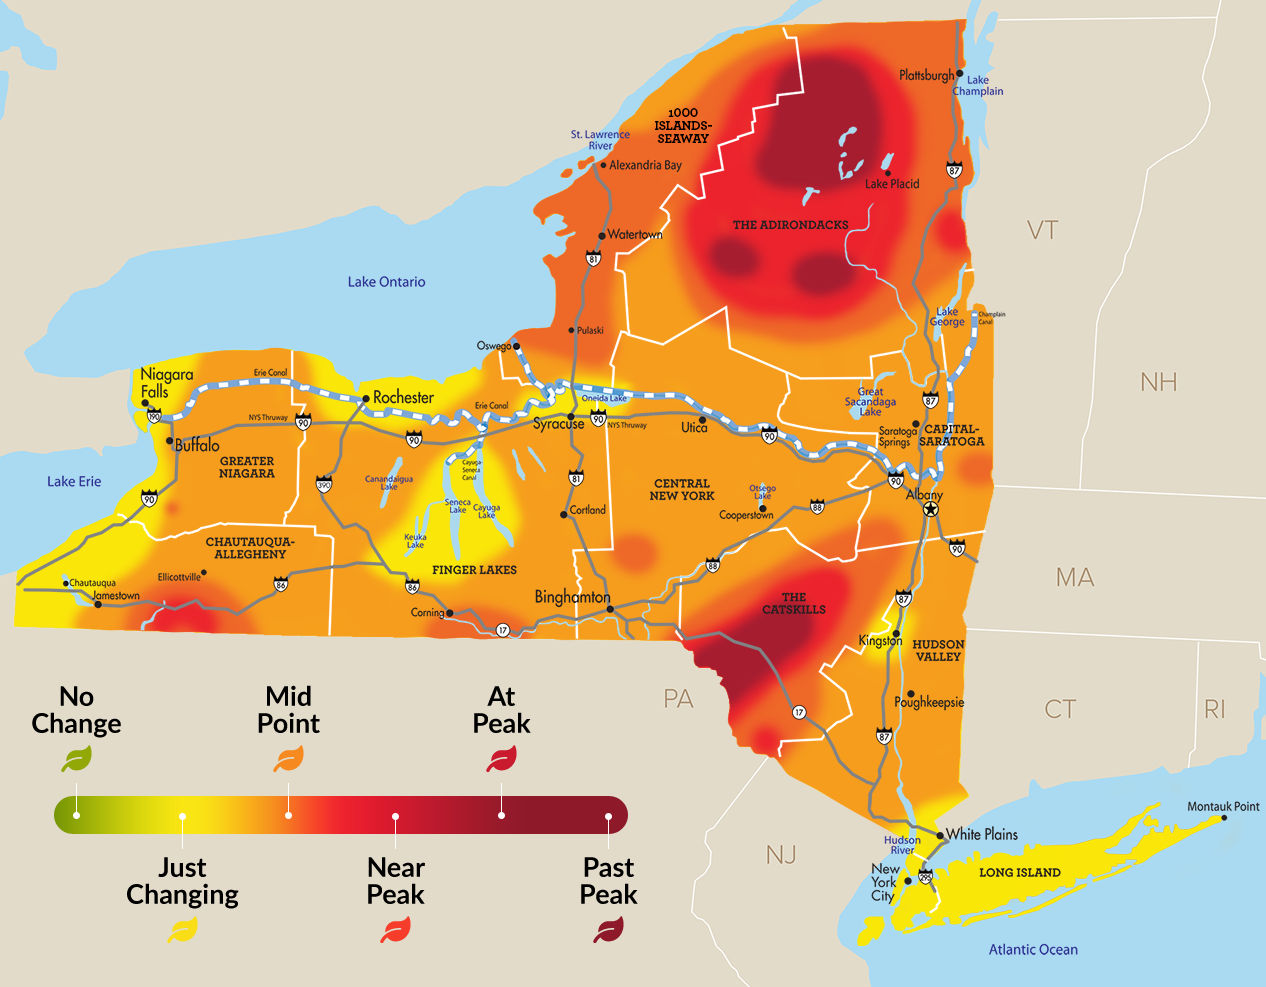 Fall foliage report: near peak in portions of Southern Tier